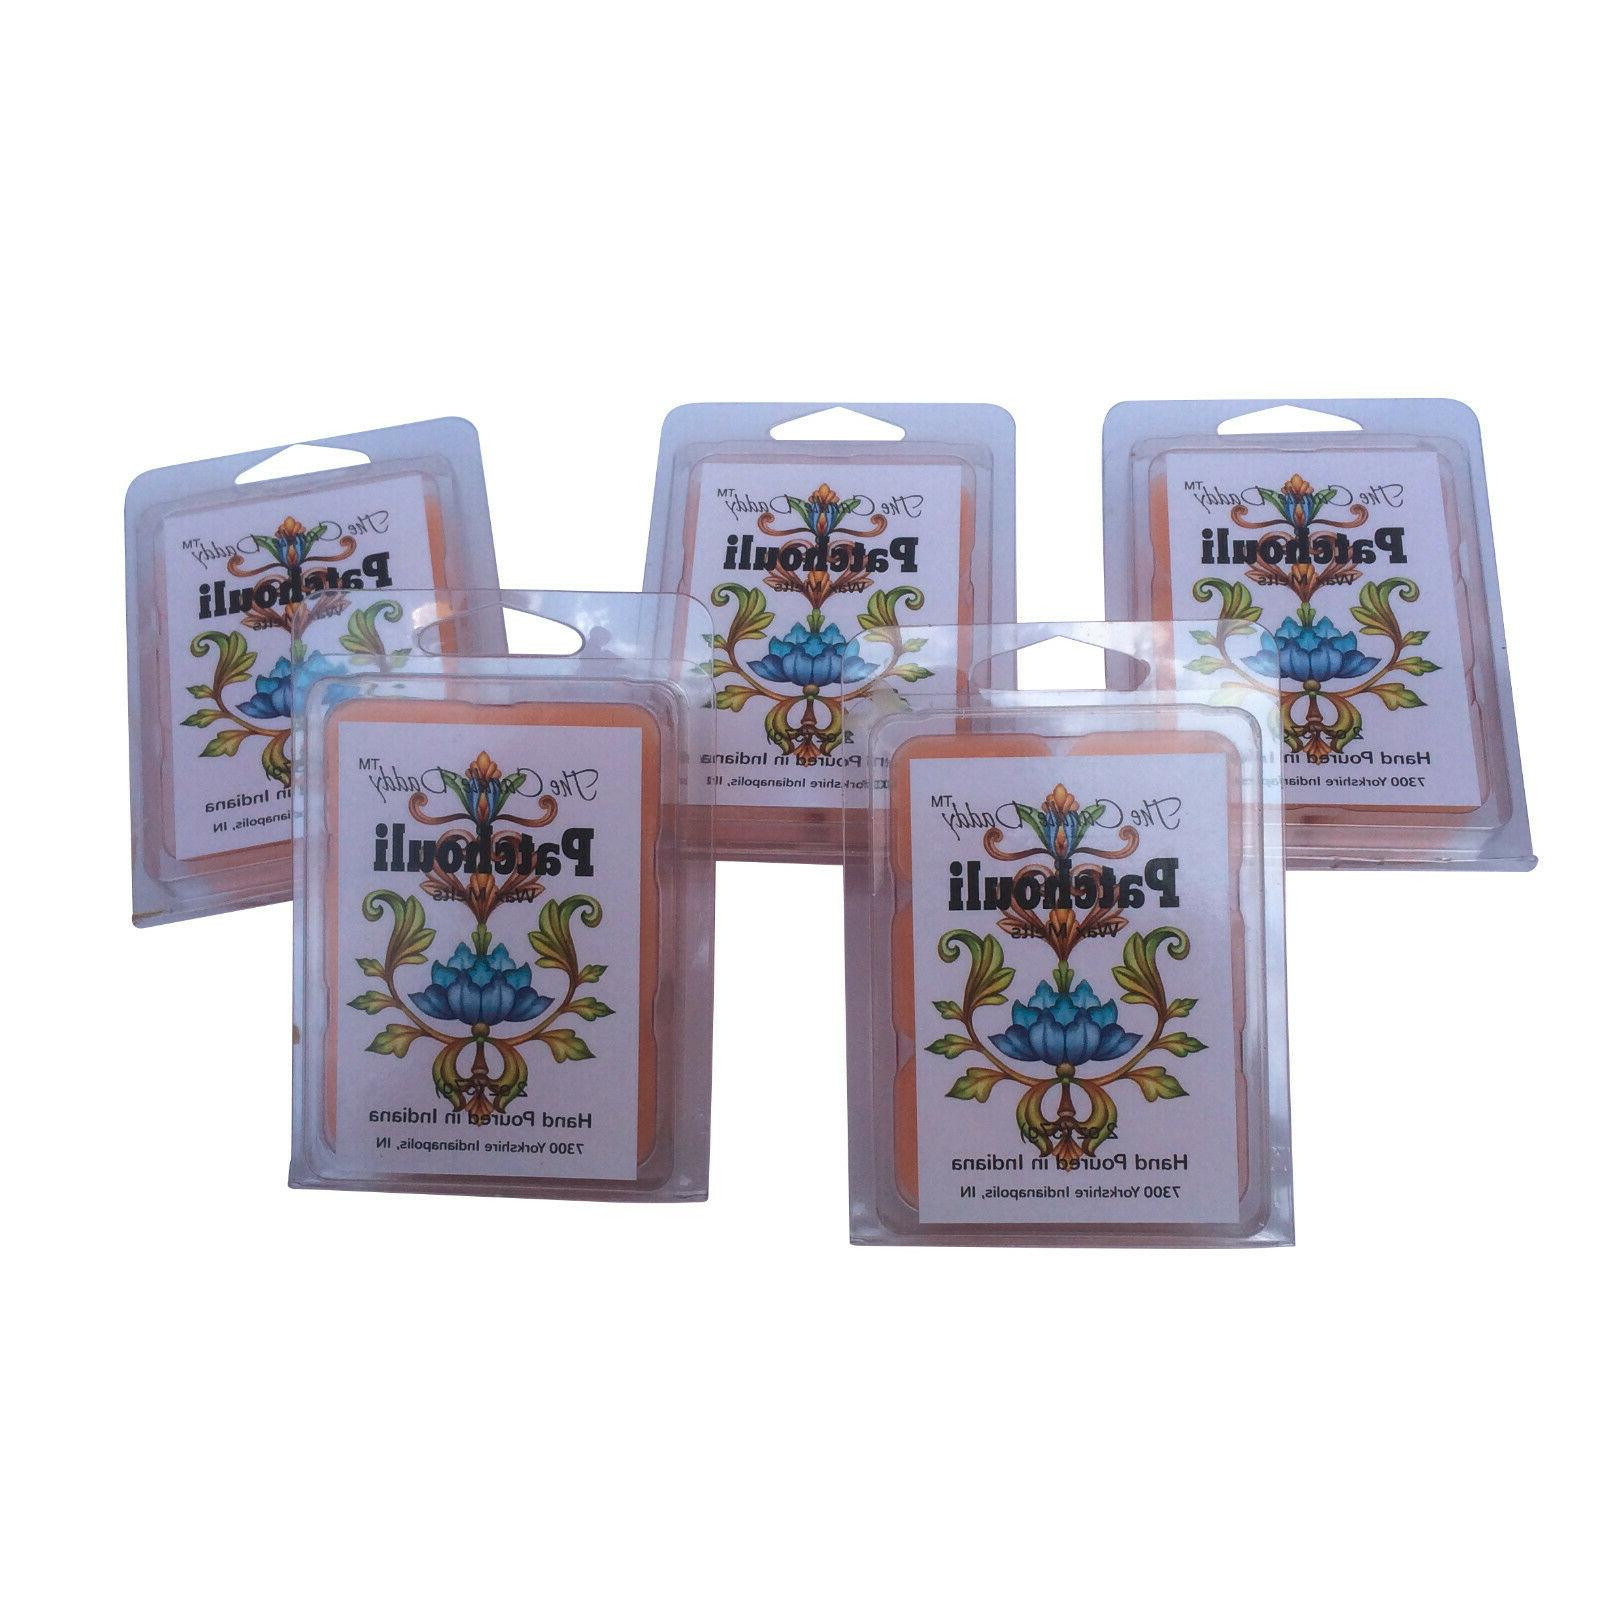 Five 10 oz. Wax Incense for oil/tart